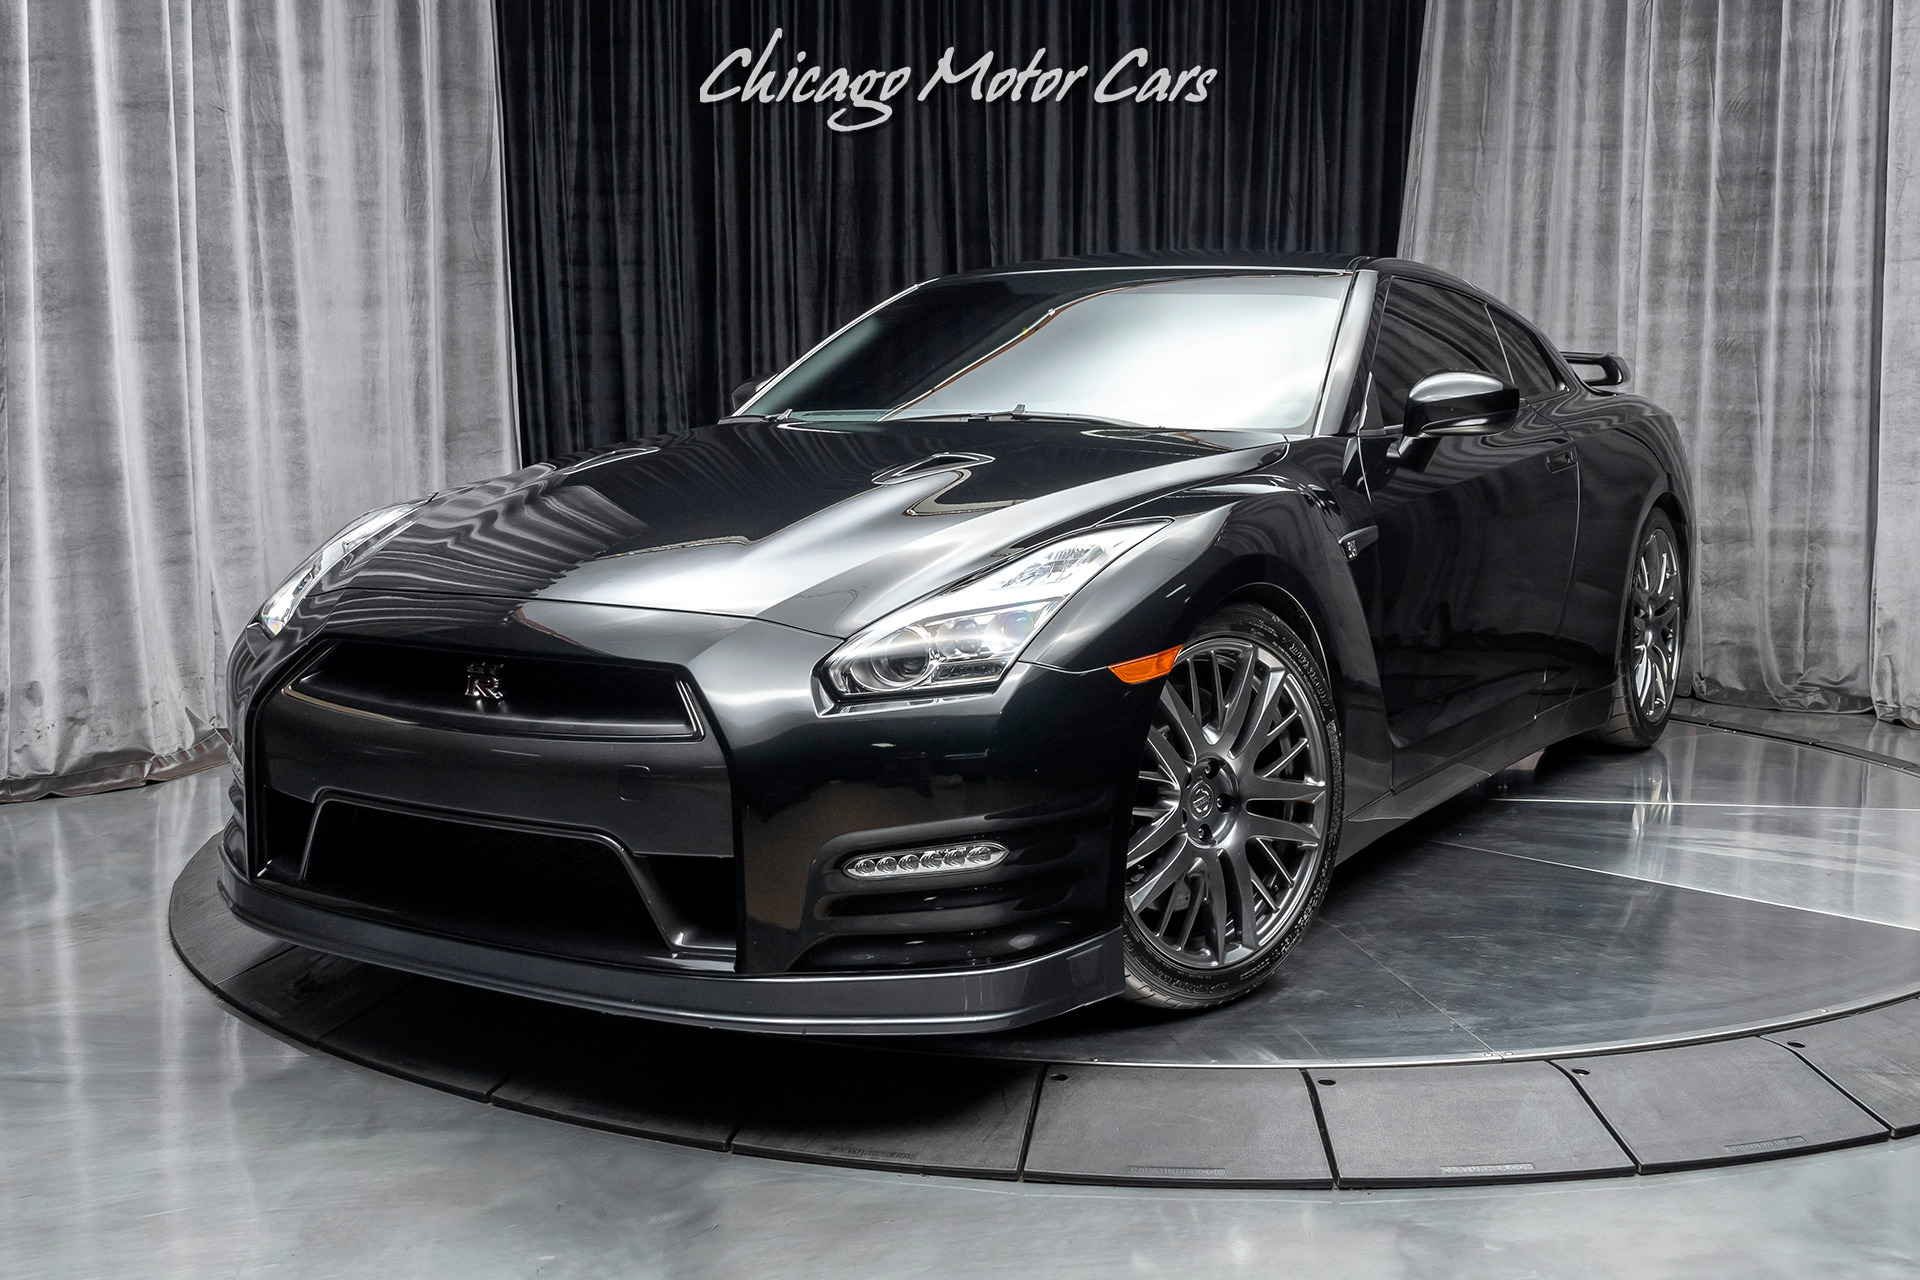 Used-2016-Nissan-GT-R-Coupe-FULL-BOLT-ON--600-WHP-16K-MILES